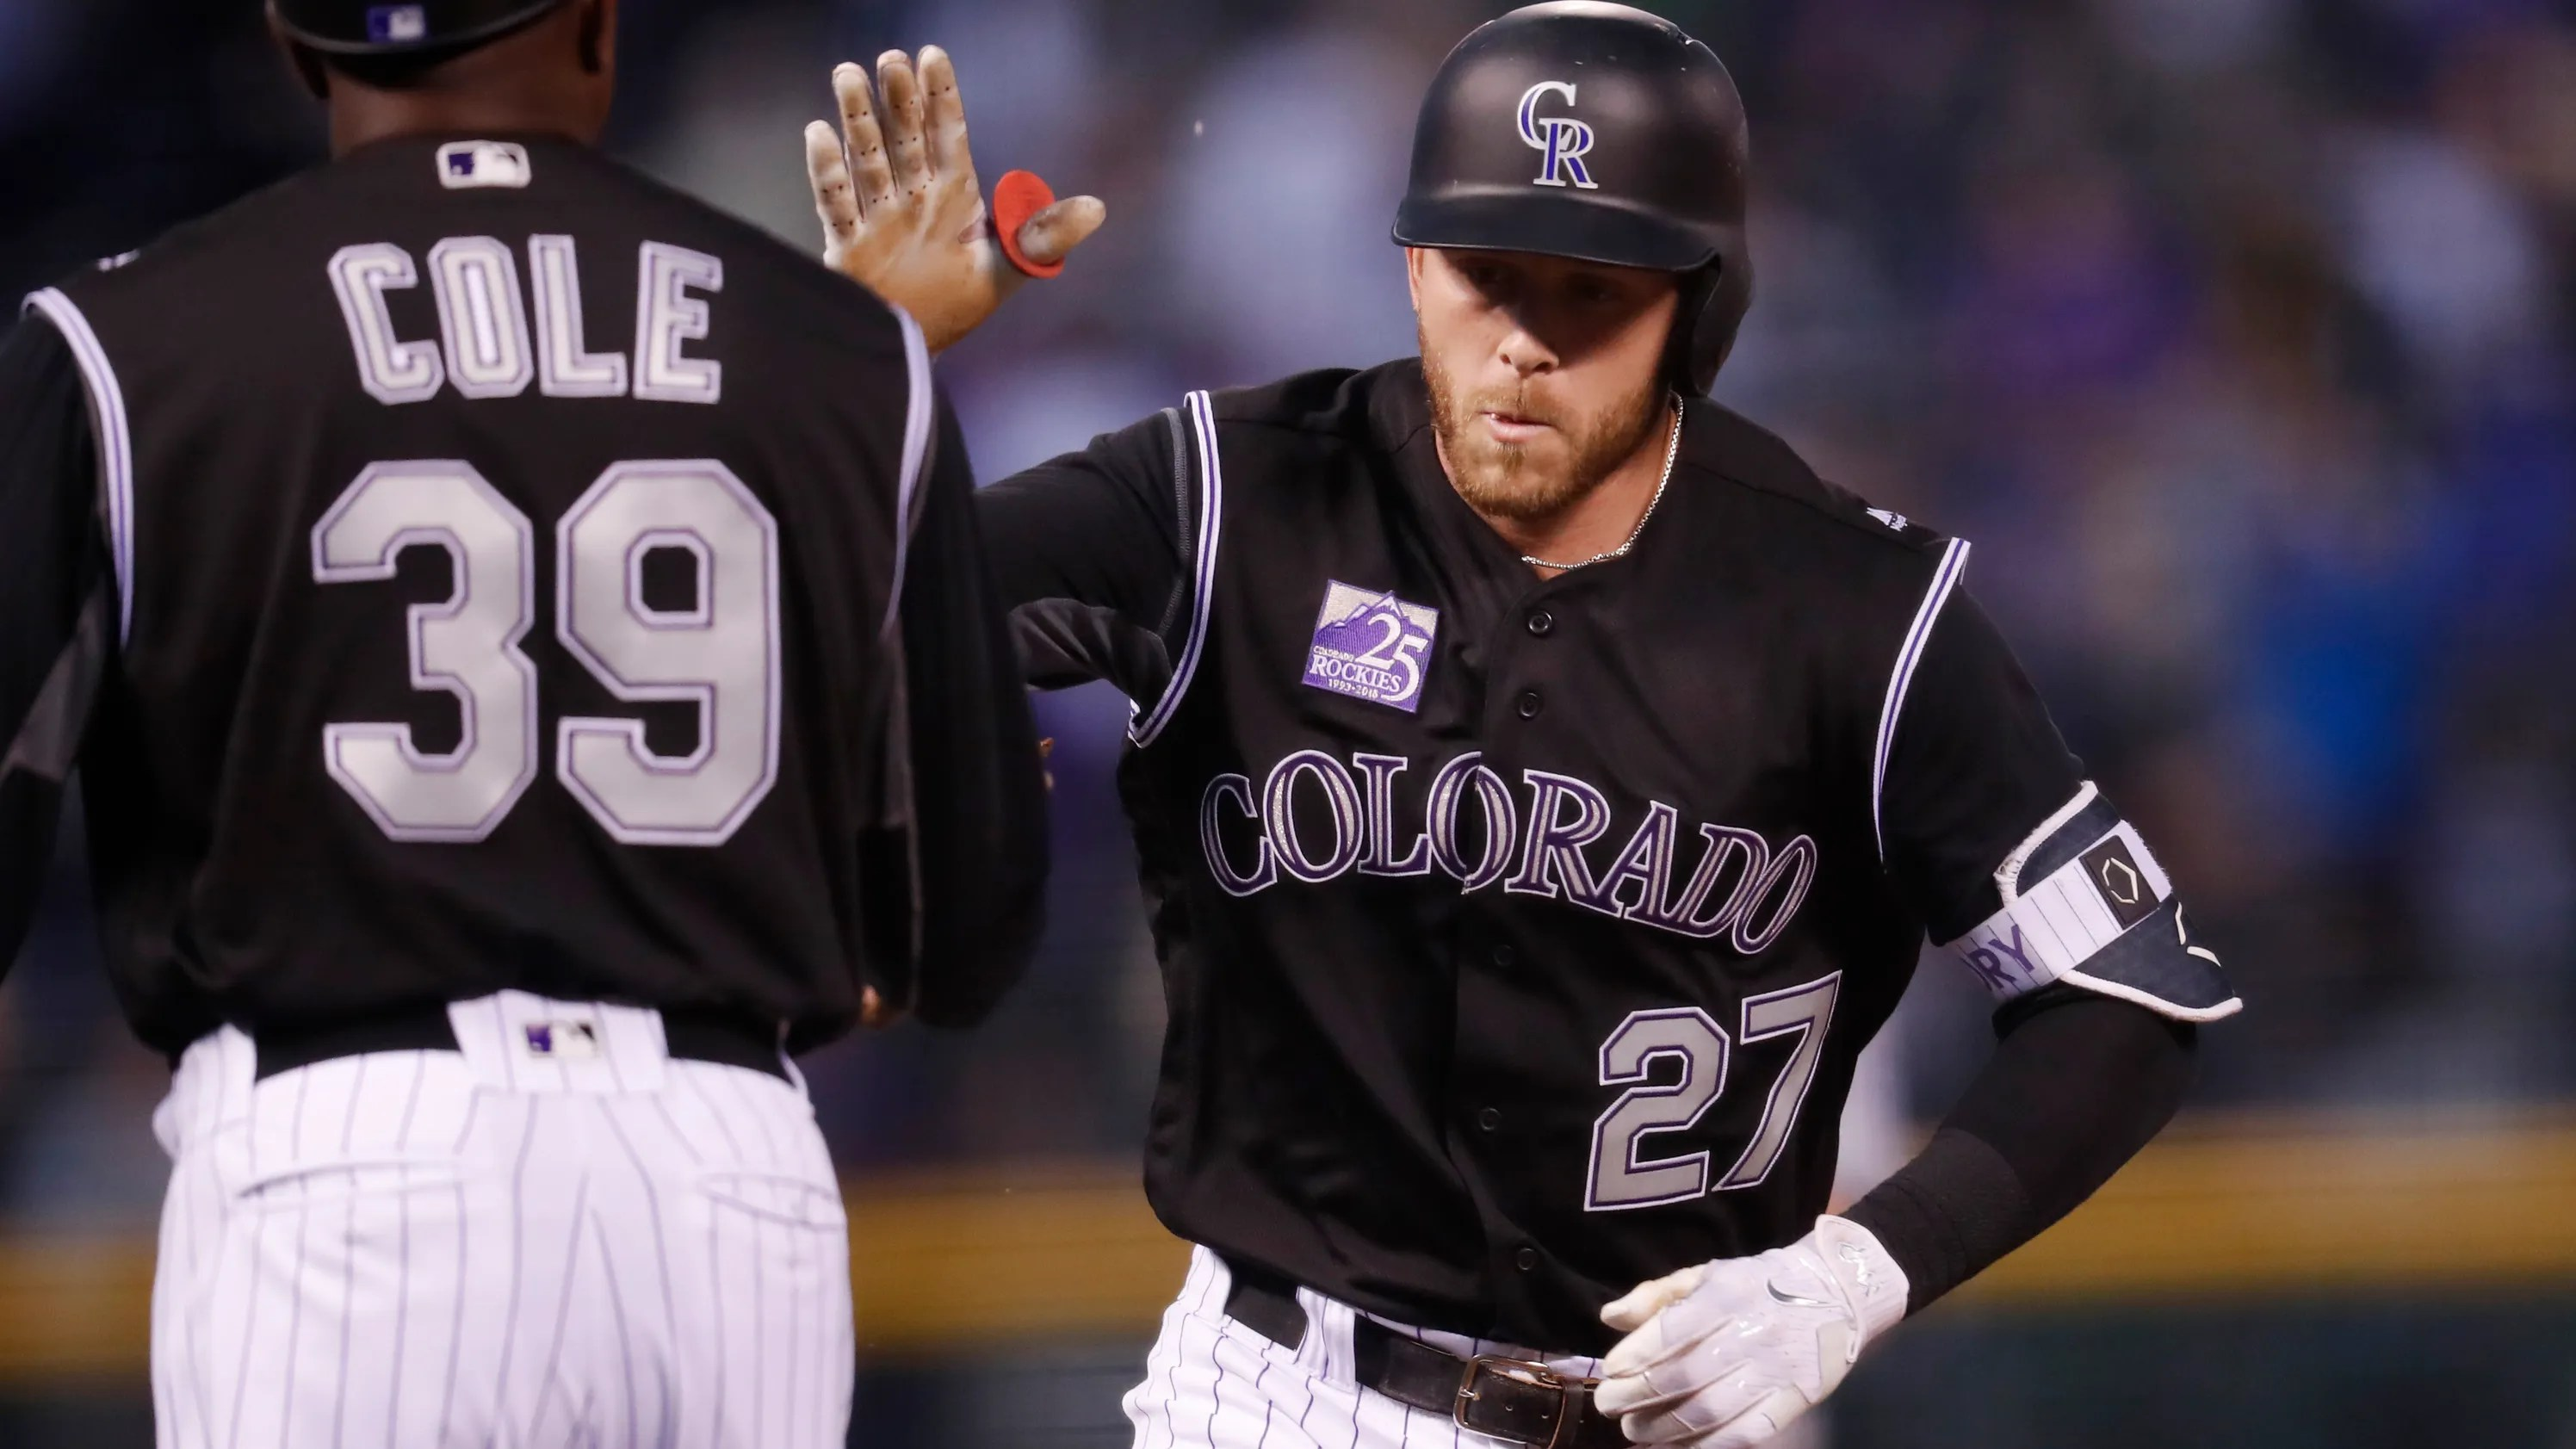 24 r score white rodgers thermostat wiring diagrams padres 9 runs in 7th inning beat rockies 13 5